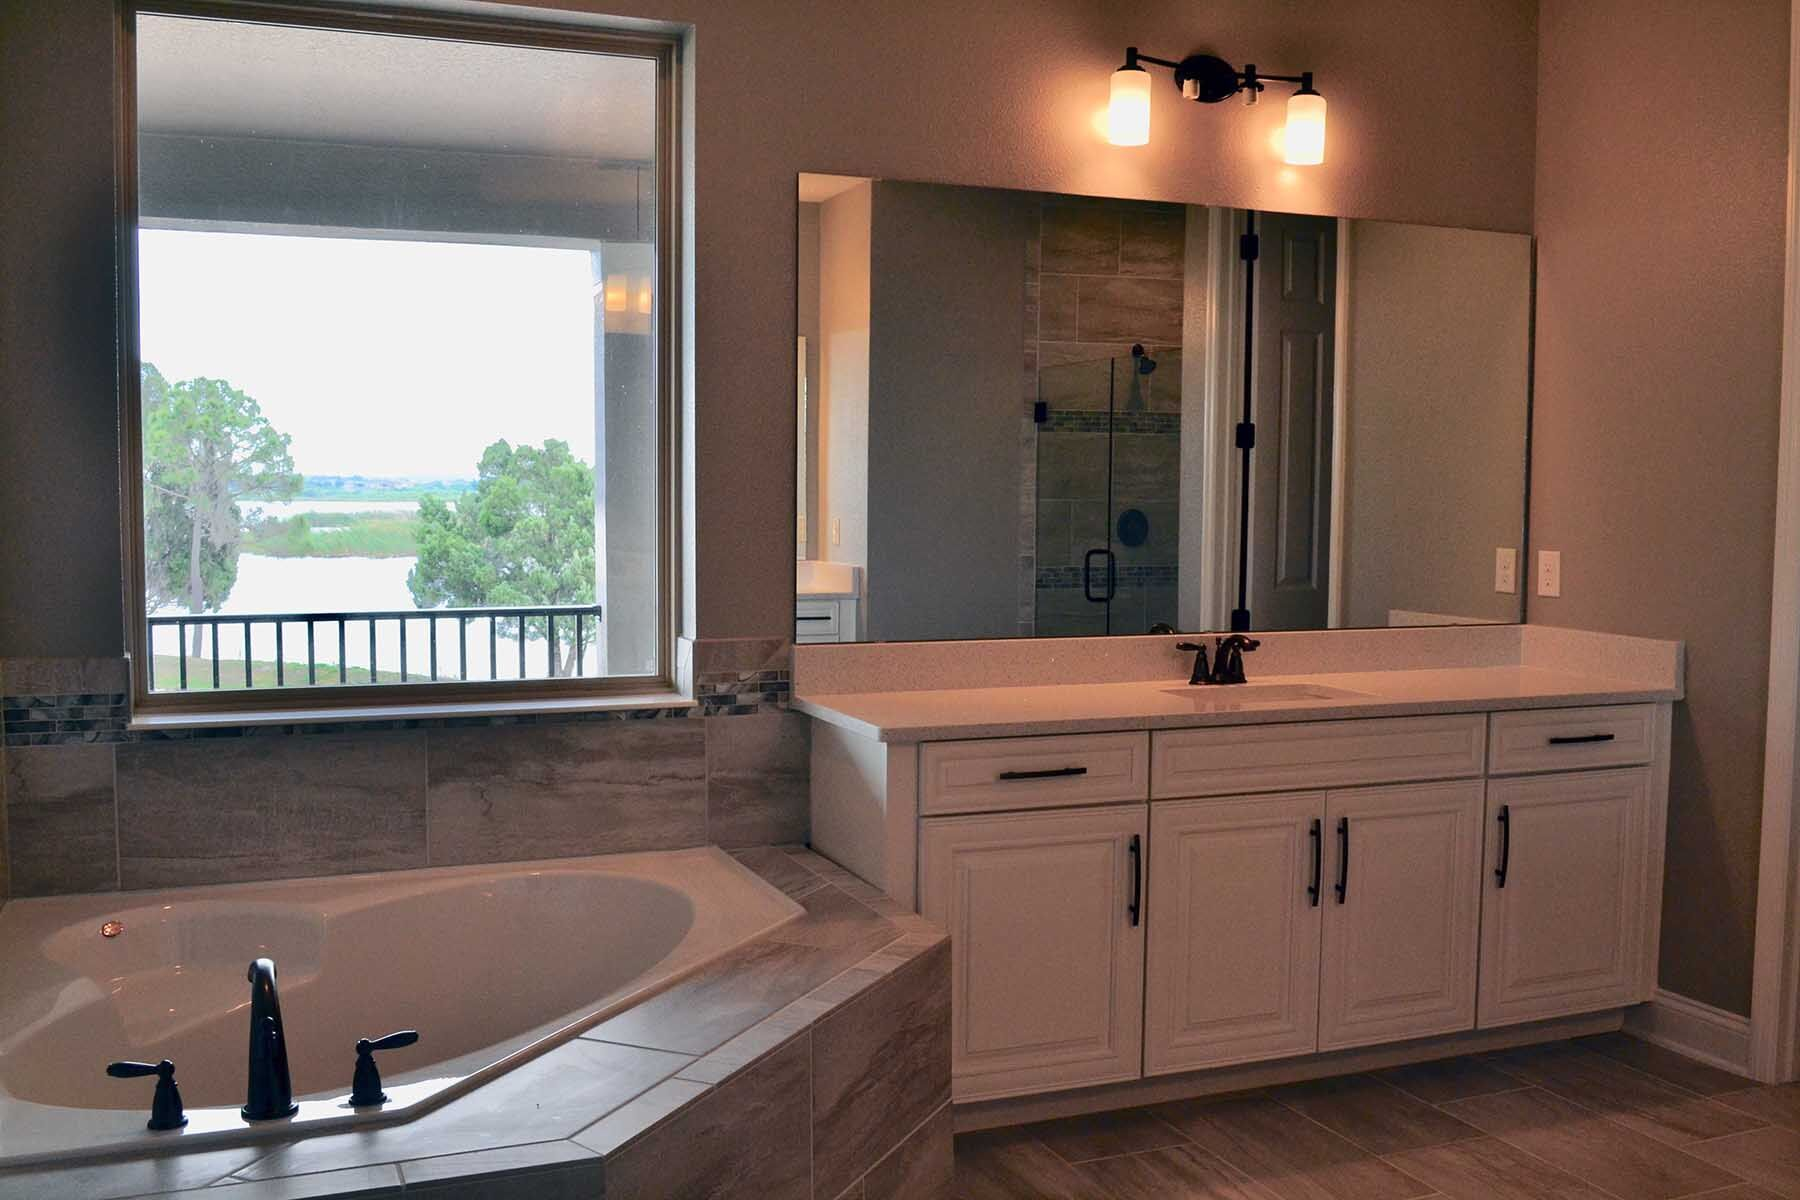 Bathroom featured in the Grandview Fl By M/I Homes in Orlando, FL